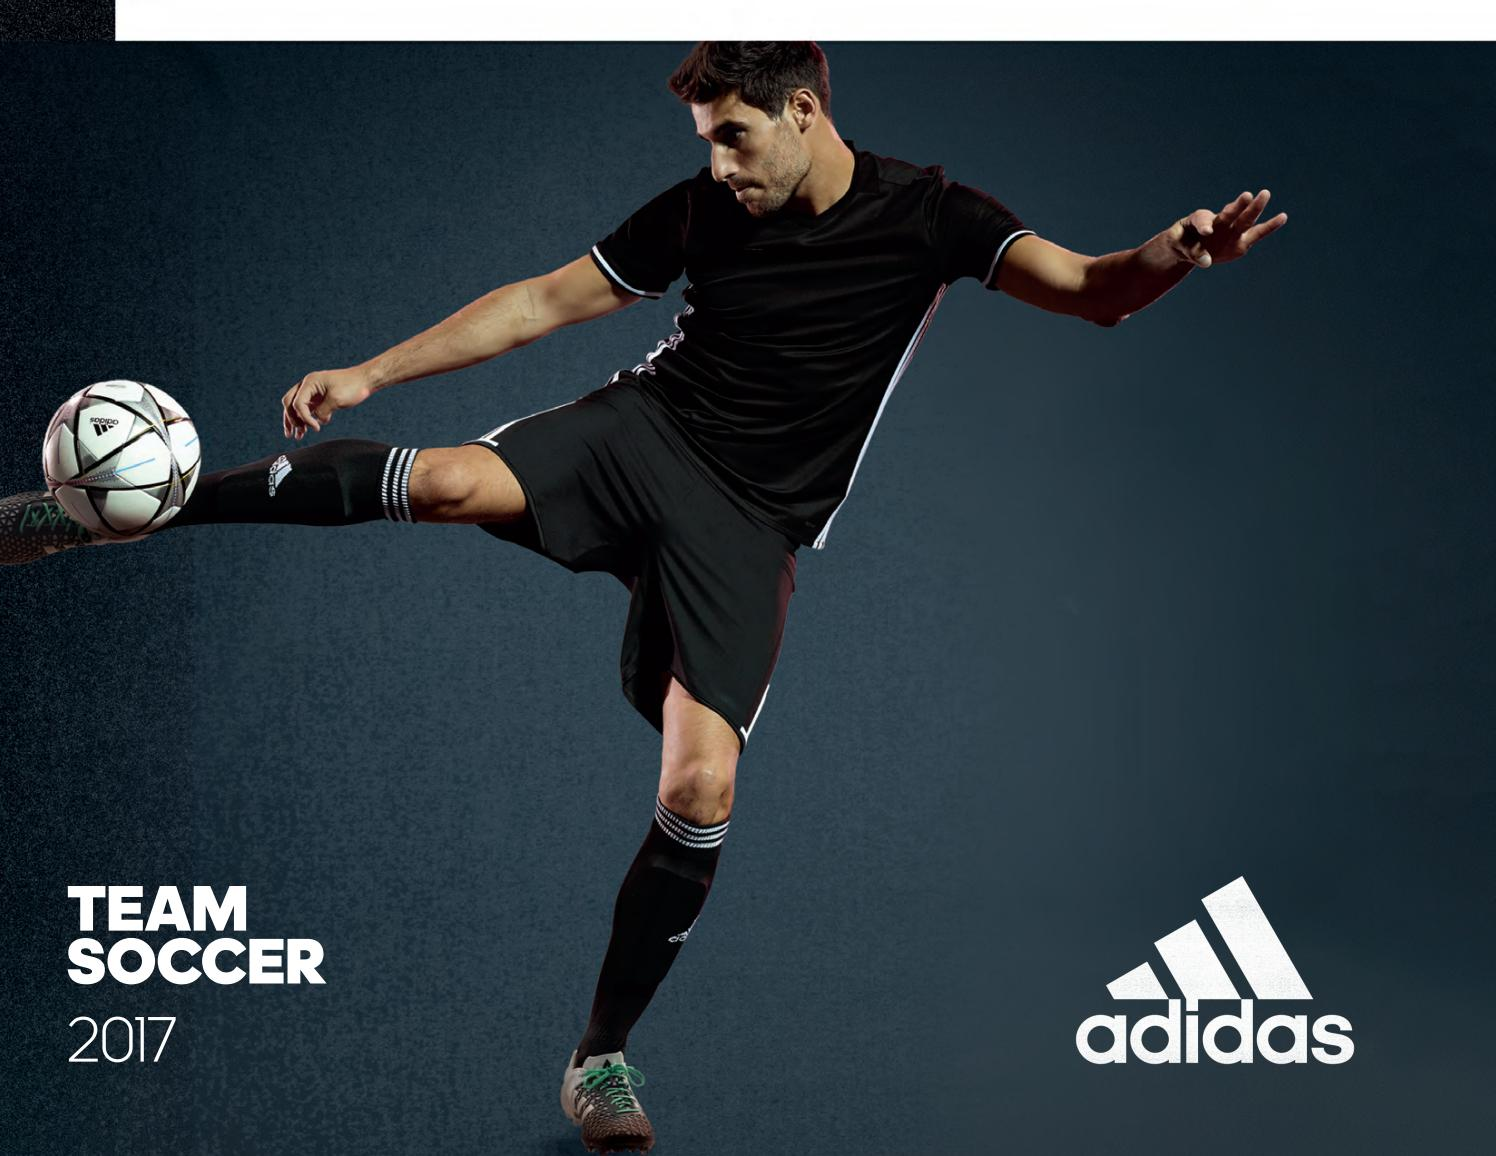 e588a67ea Adidas team soccer 2017 by Soccer Locker Atlanta - issuu